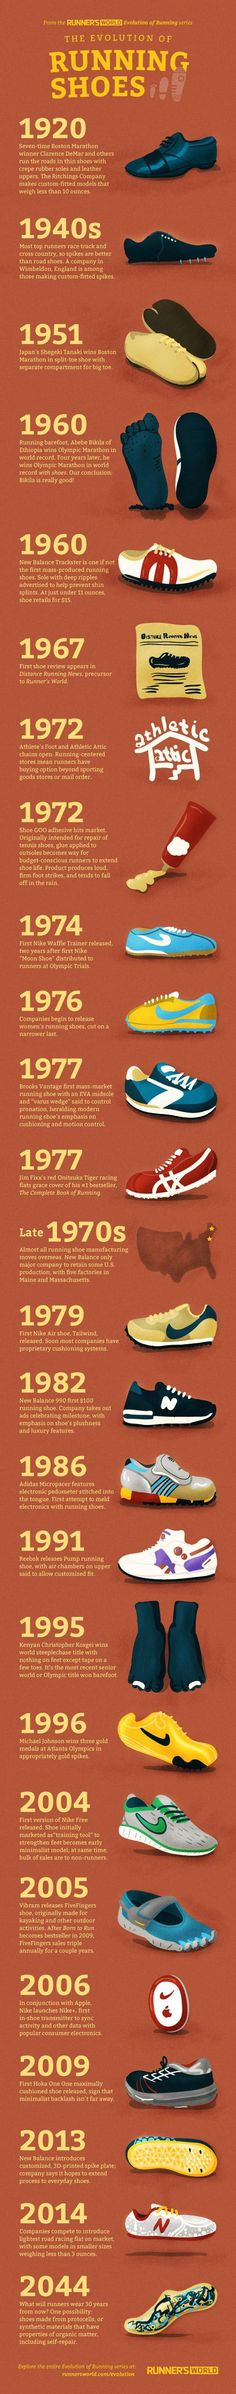 A Brief History of the Running Shoe http://www.runnersworld.com/running-shoes/a-brief-history-of-the-running-shoe